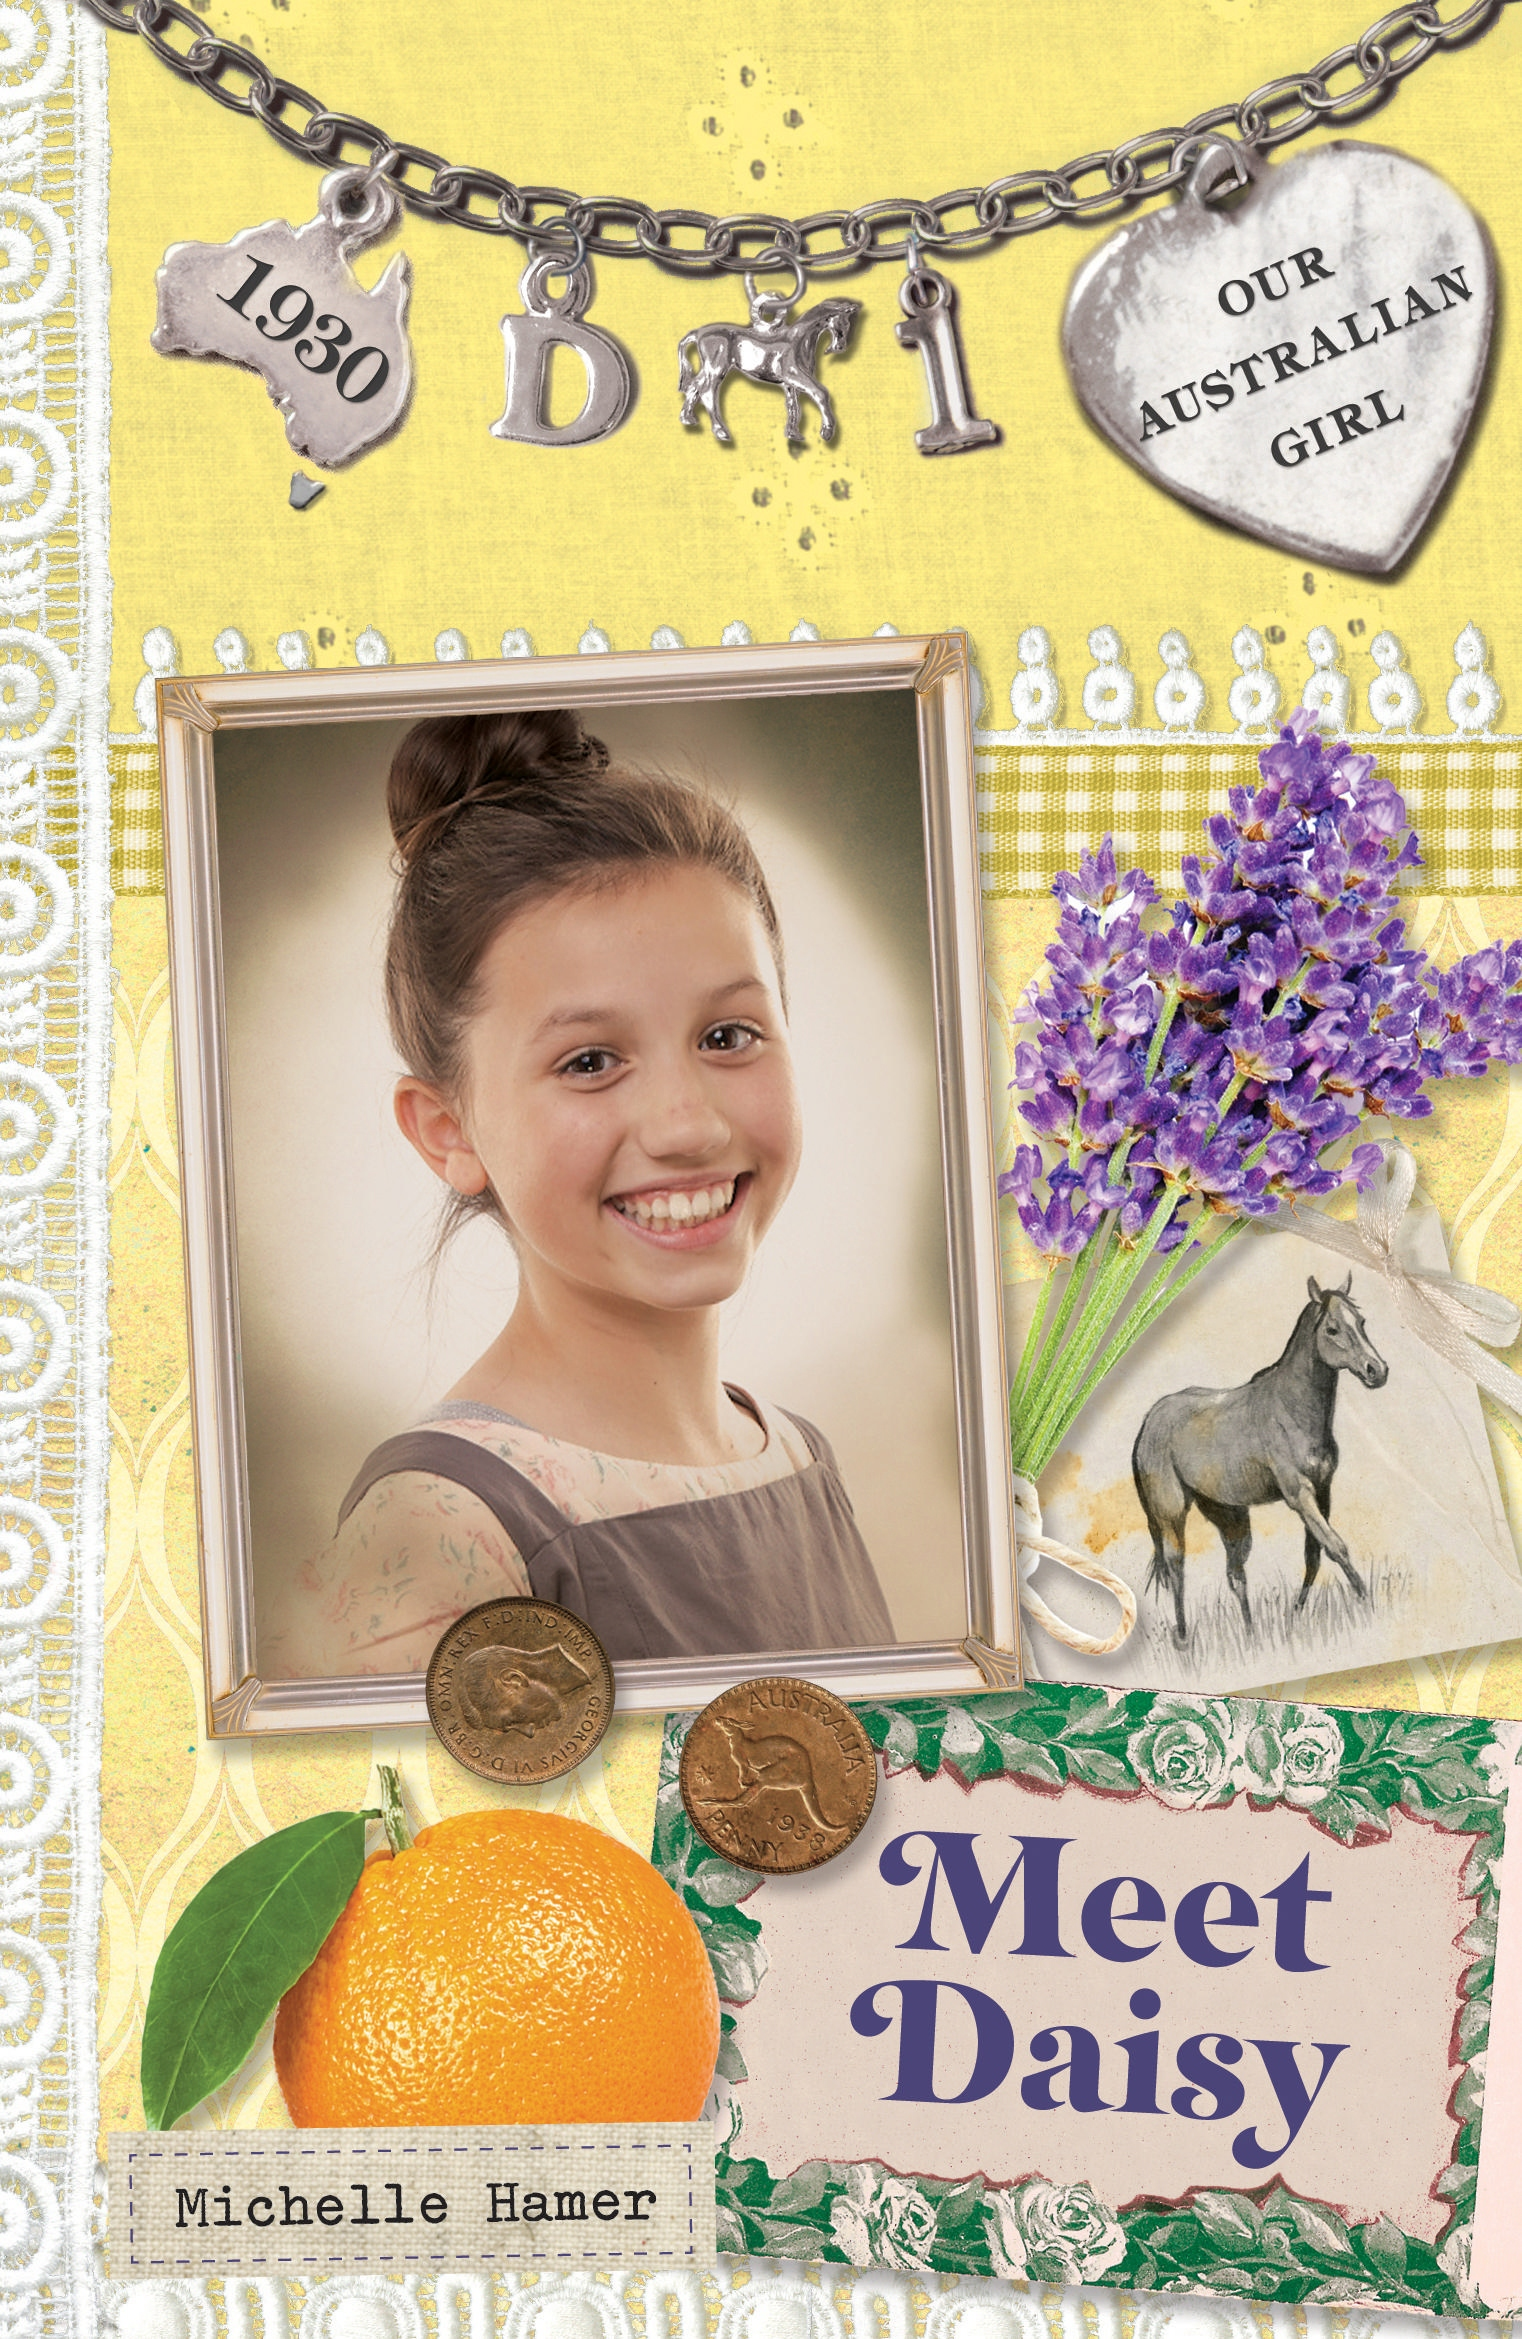 Our Australian Girl: Meet Daisy (Book 1) (eBook)